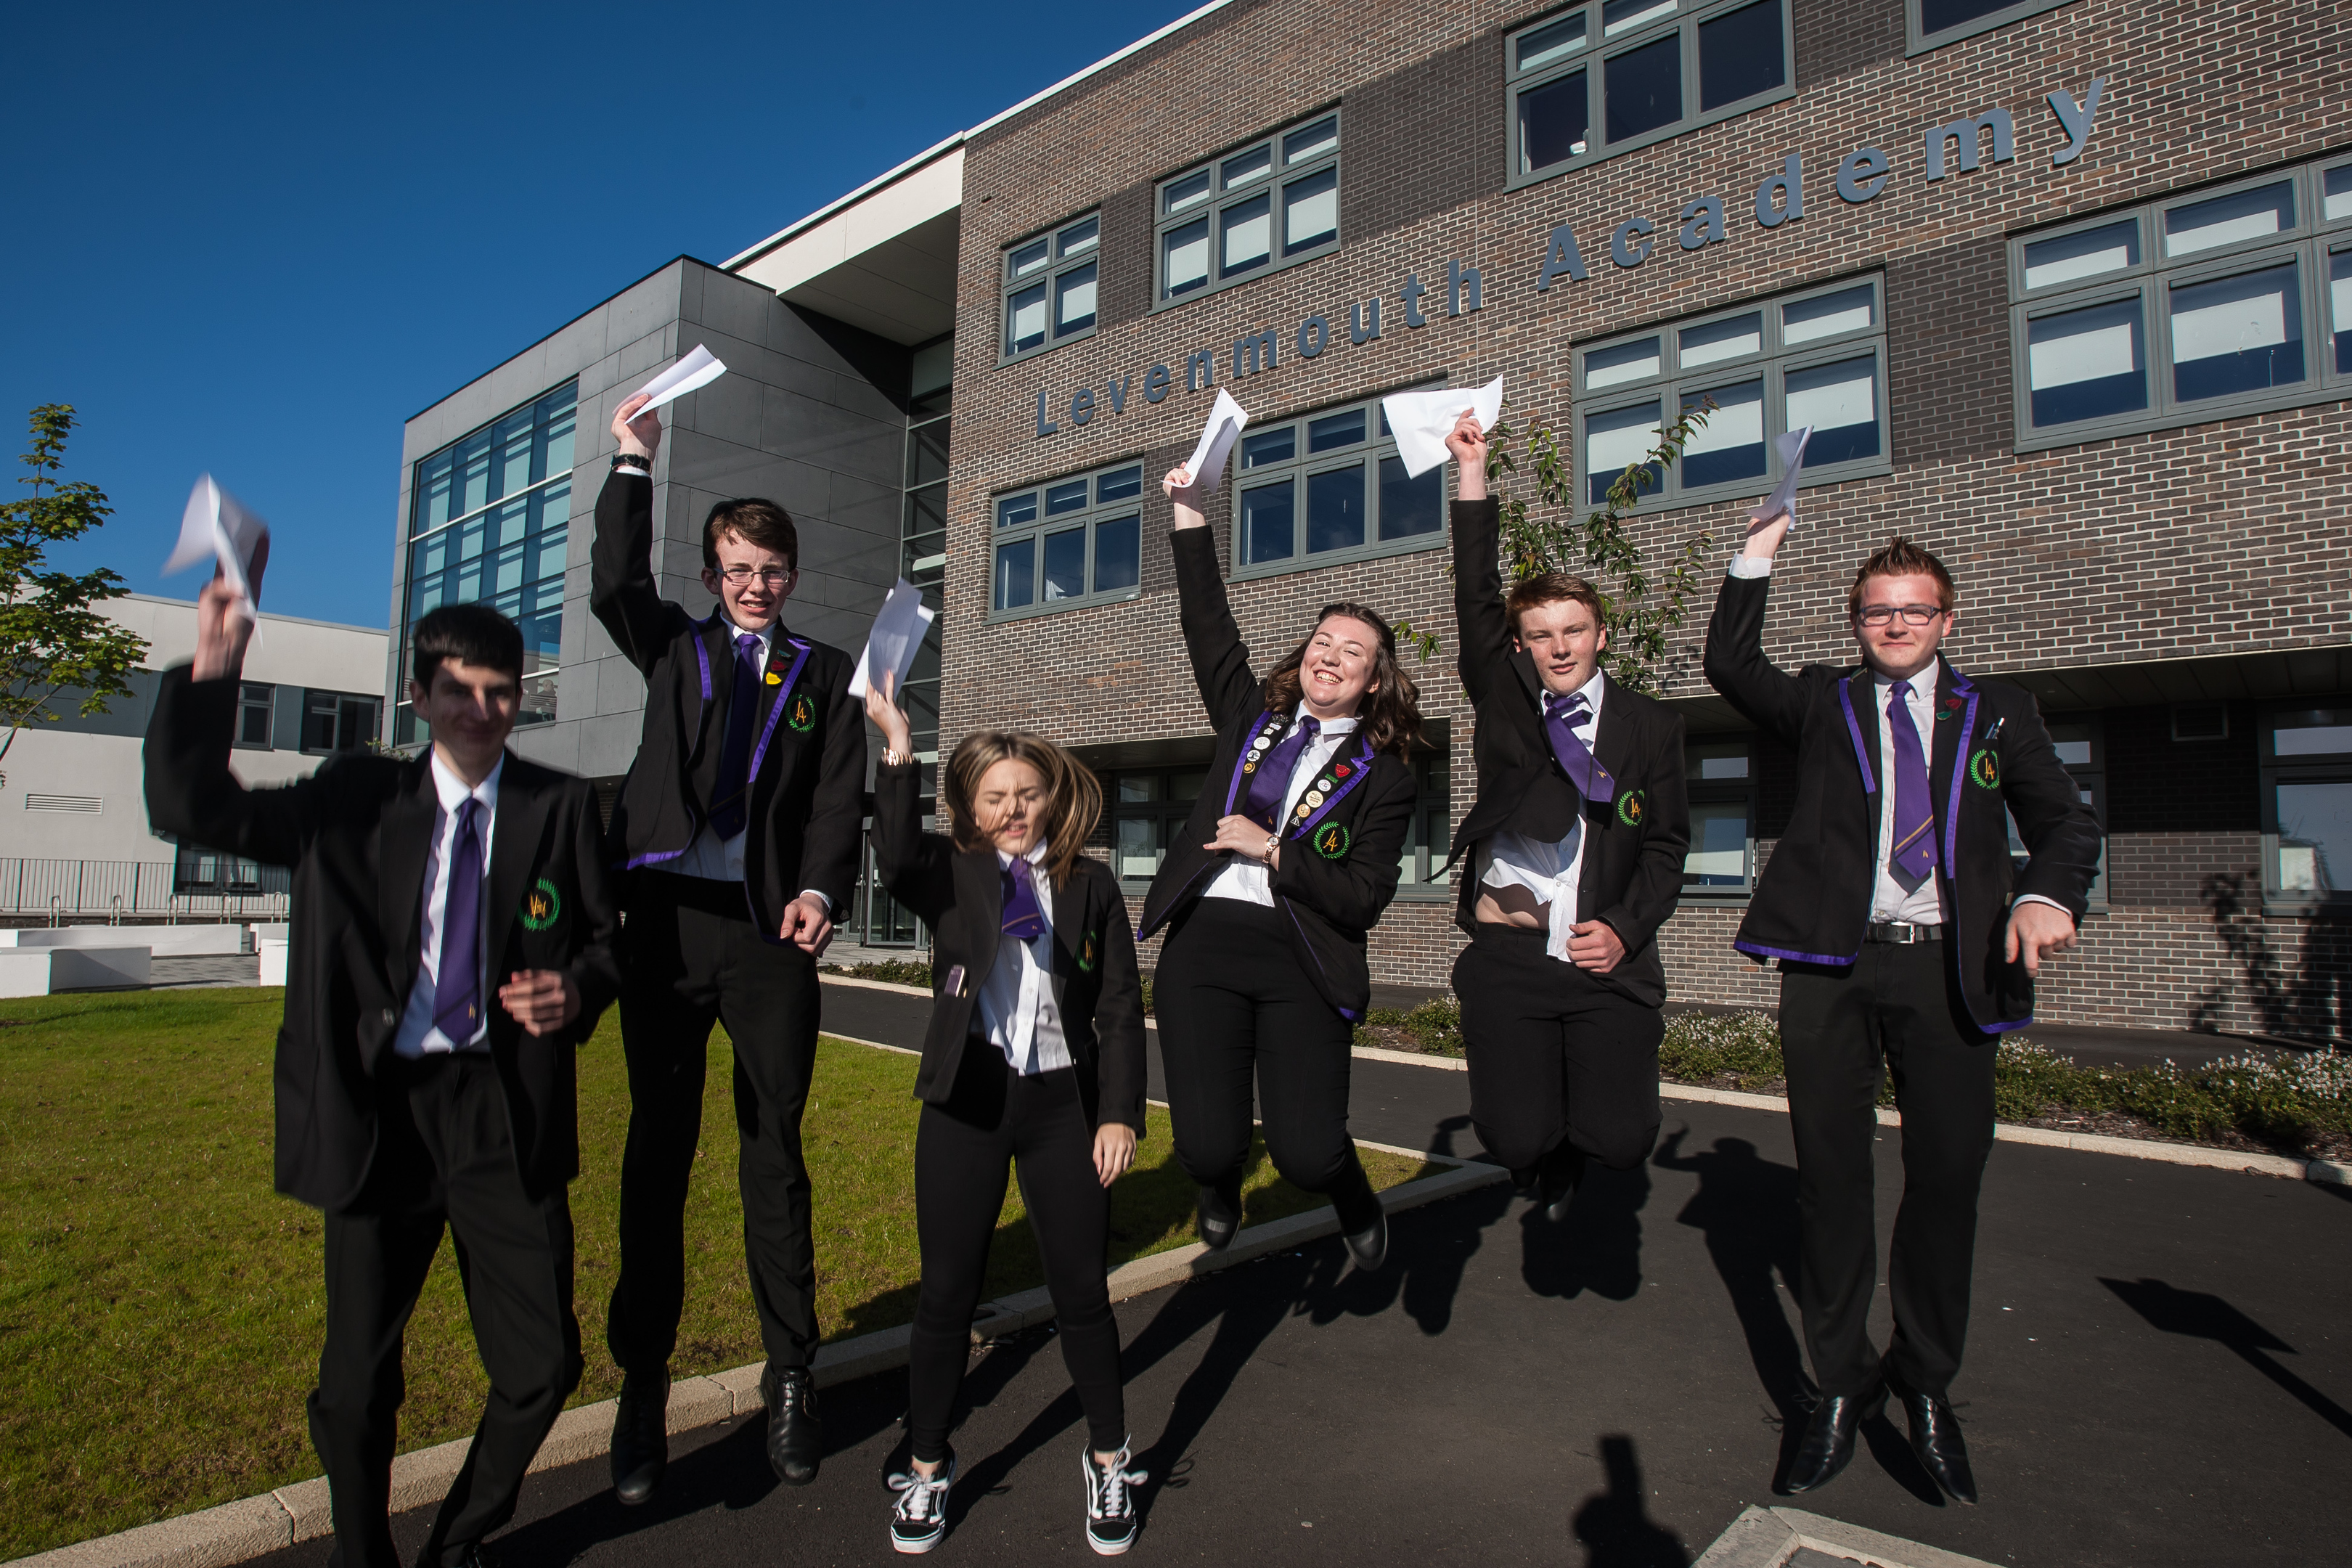 The first year of exam results at Levenmouth Academy in 2017. From left: David Anderson, Michael Taylor, Amy Thomson, Francesca Donaghy, Finlay O'Neill and Adin Johnstone.